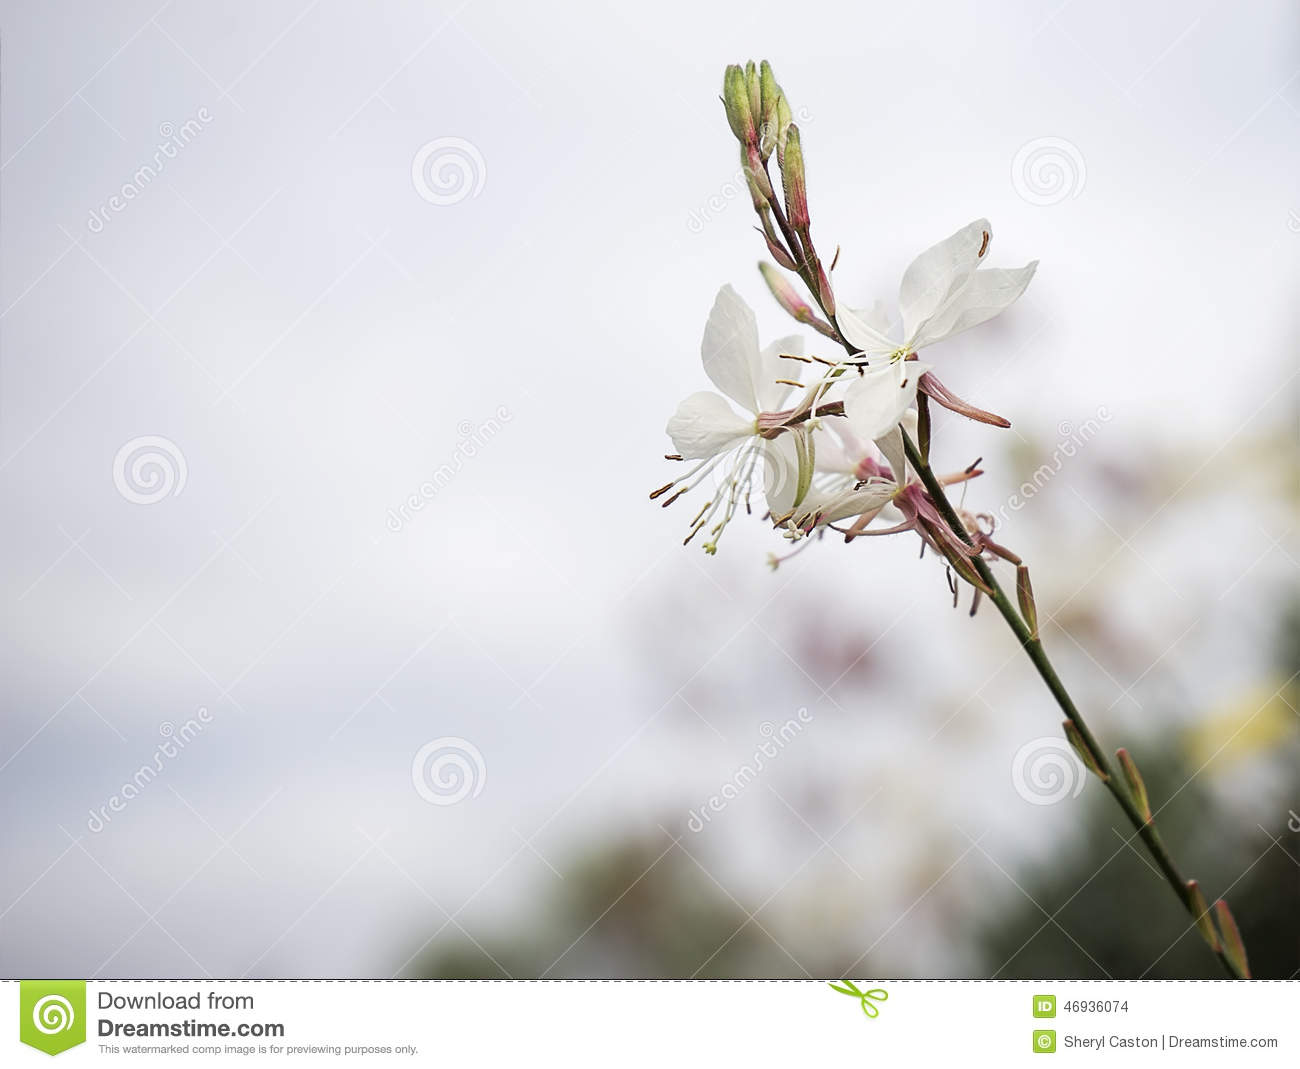 Gaura Flower With Neutral Copy-space Stock Photo - Image: 46936074